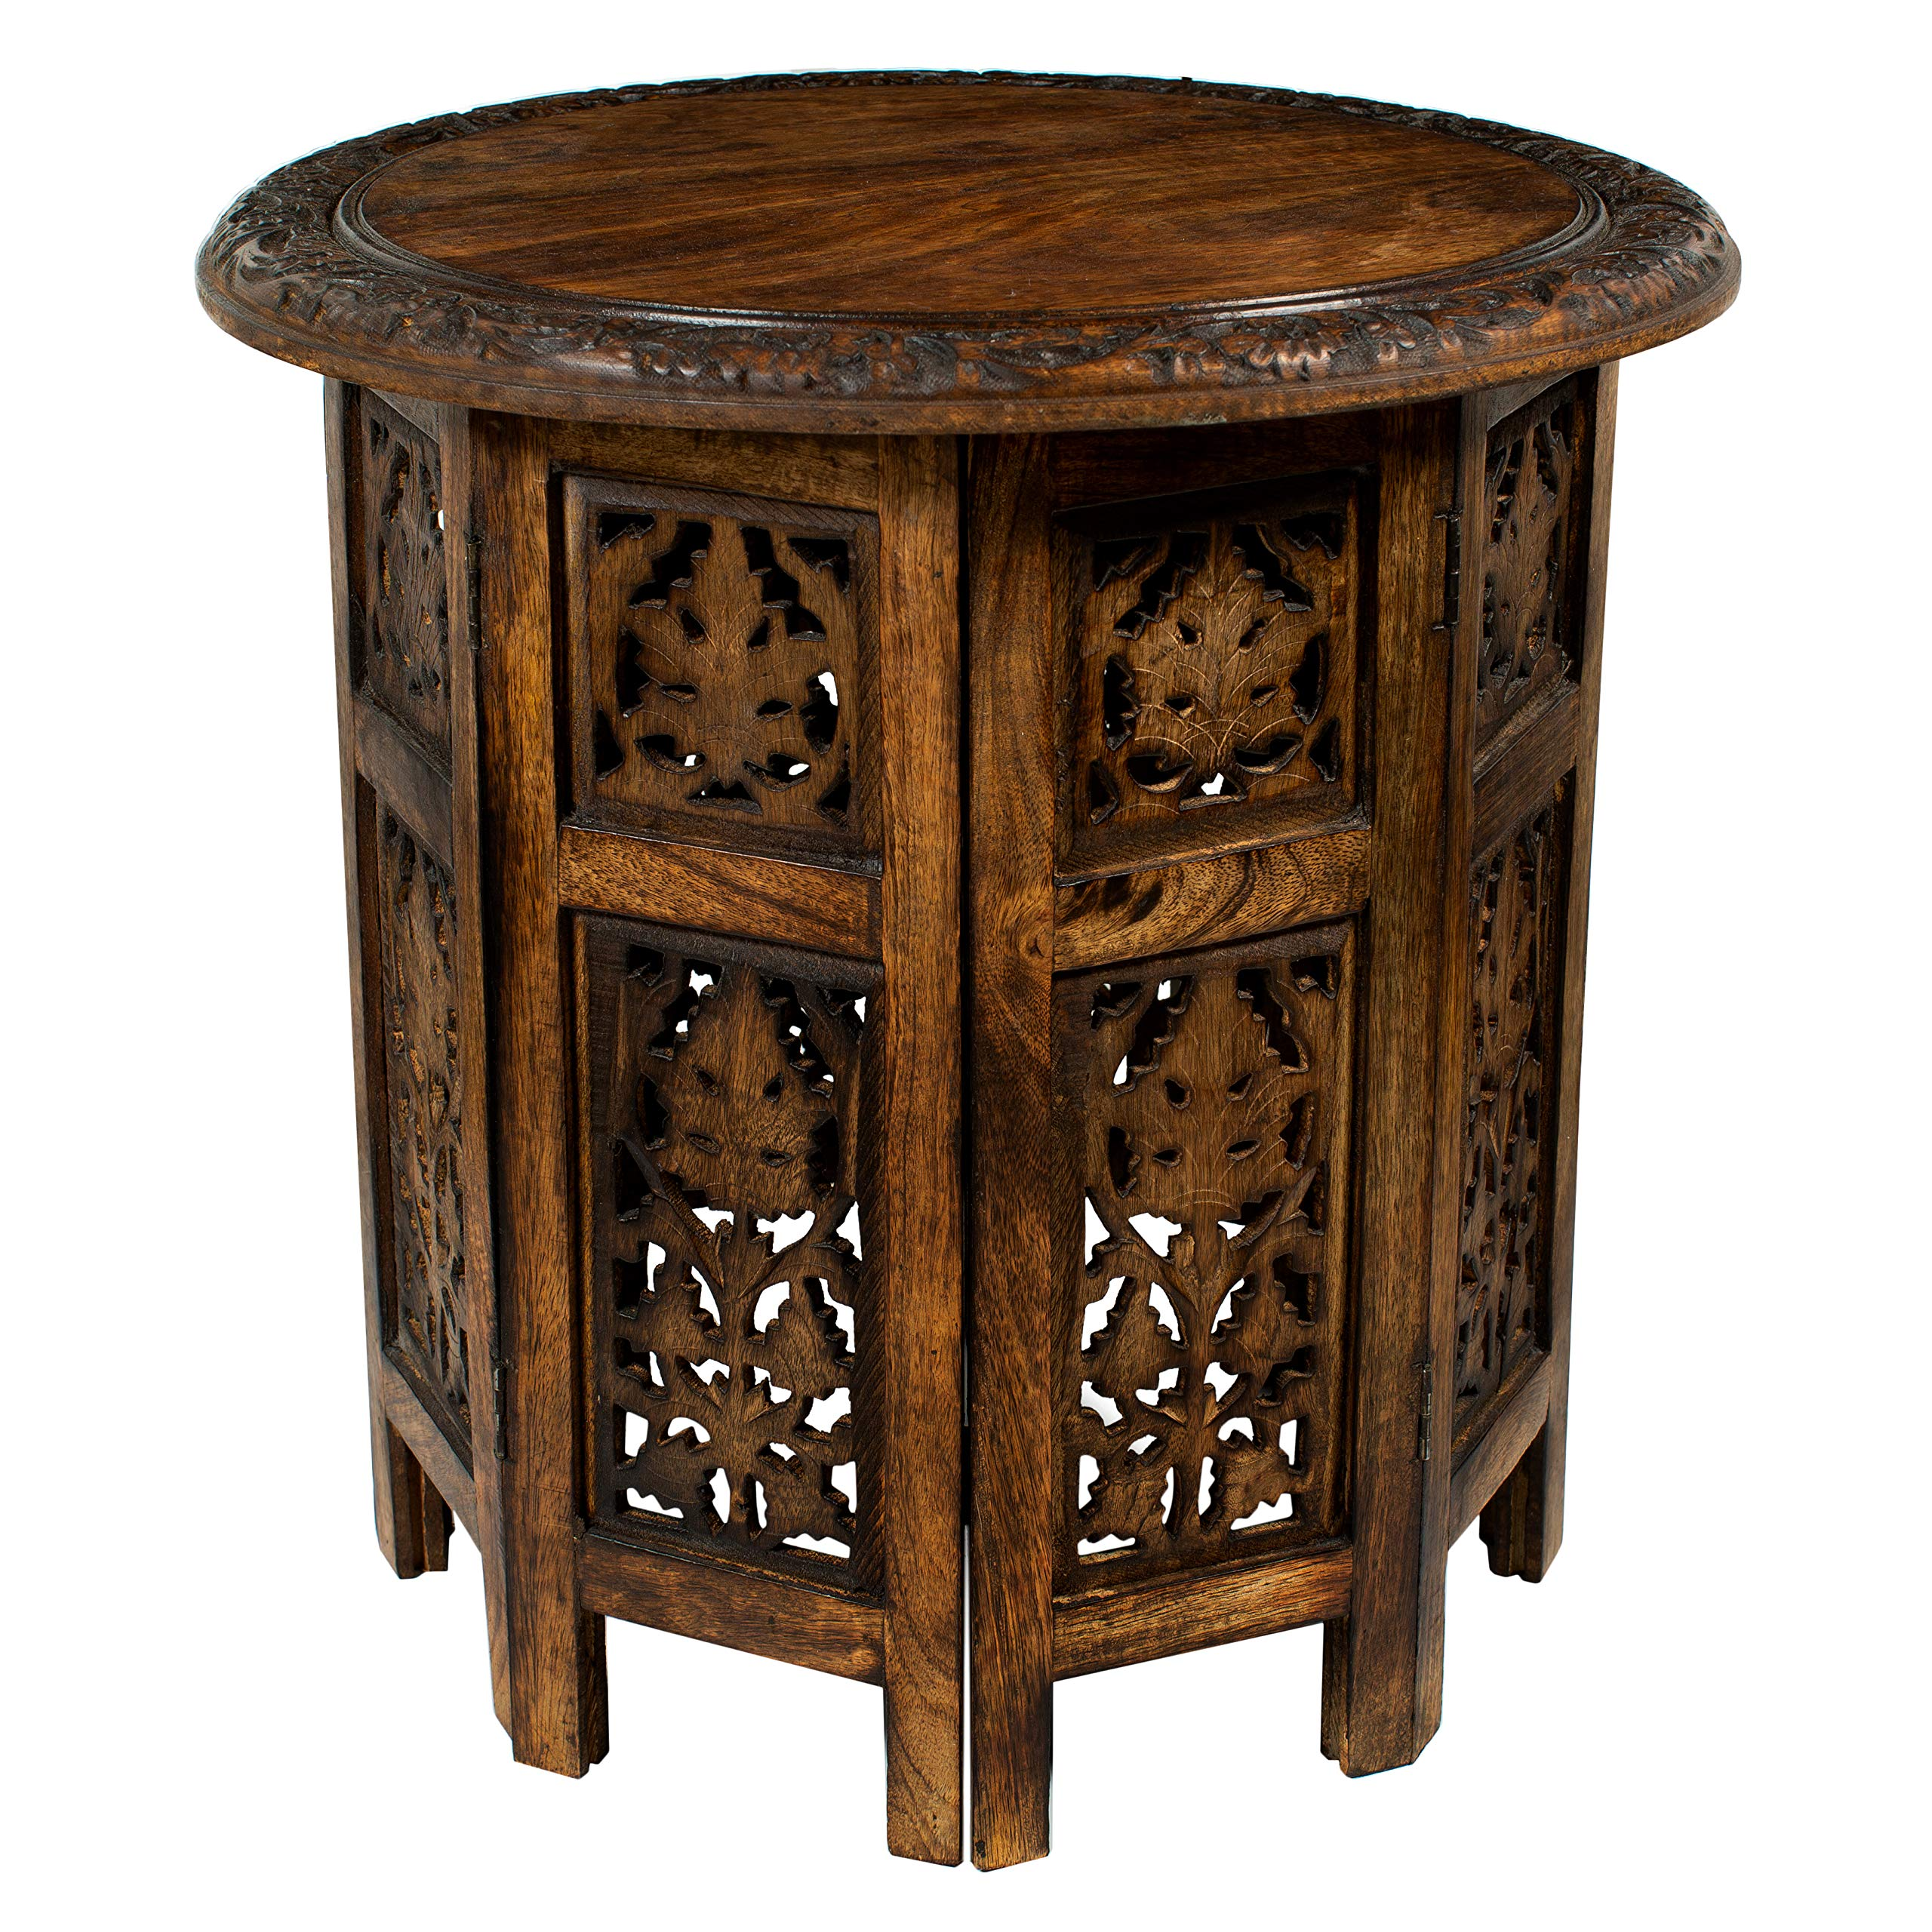 Cotton Craft Jaipur Solid Wood Hand Carved Accent Coffee Table - 18 Inch Round Top x 18 Inch High - Antique Brown by COTTON CRAFT